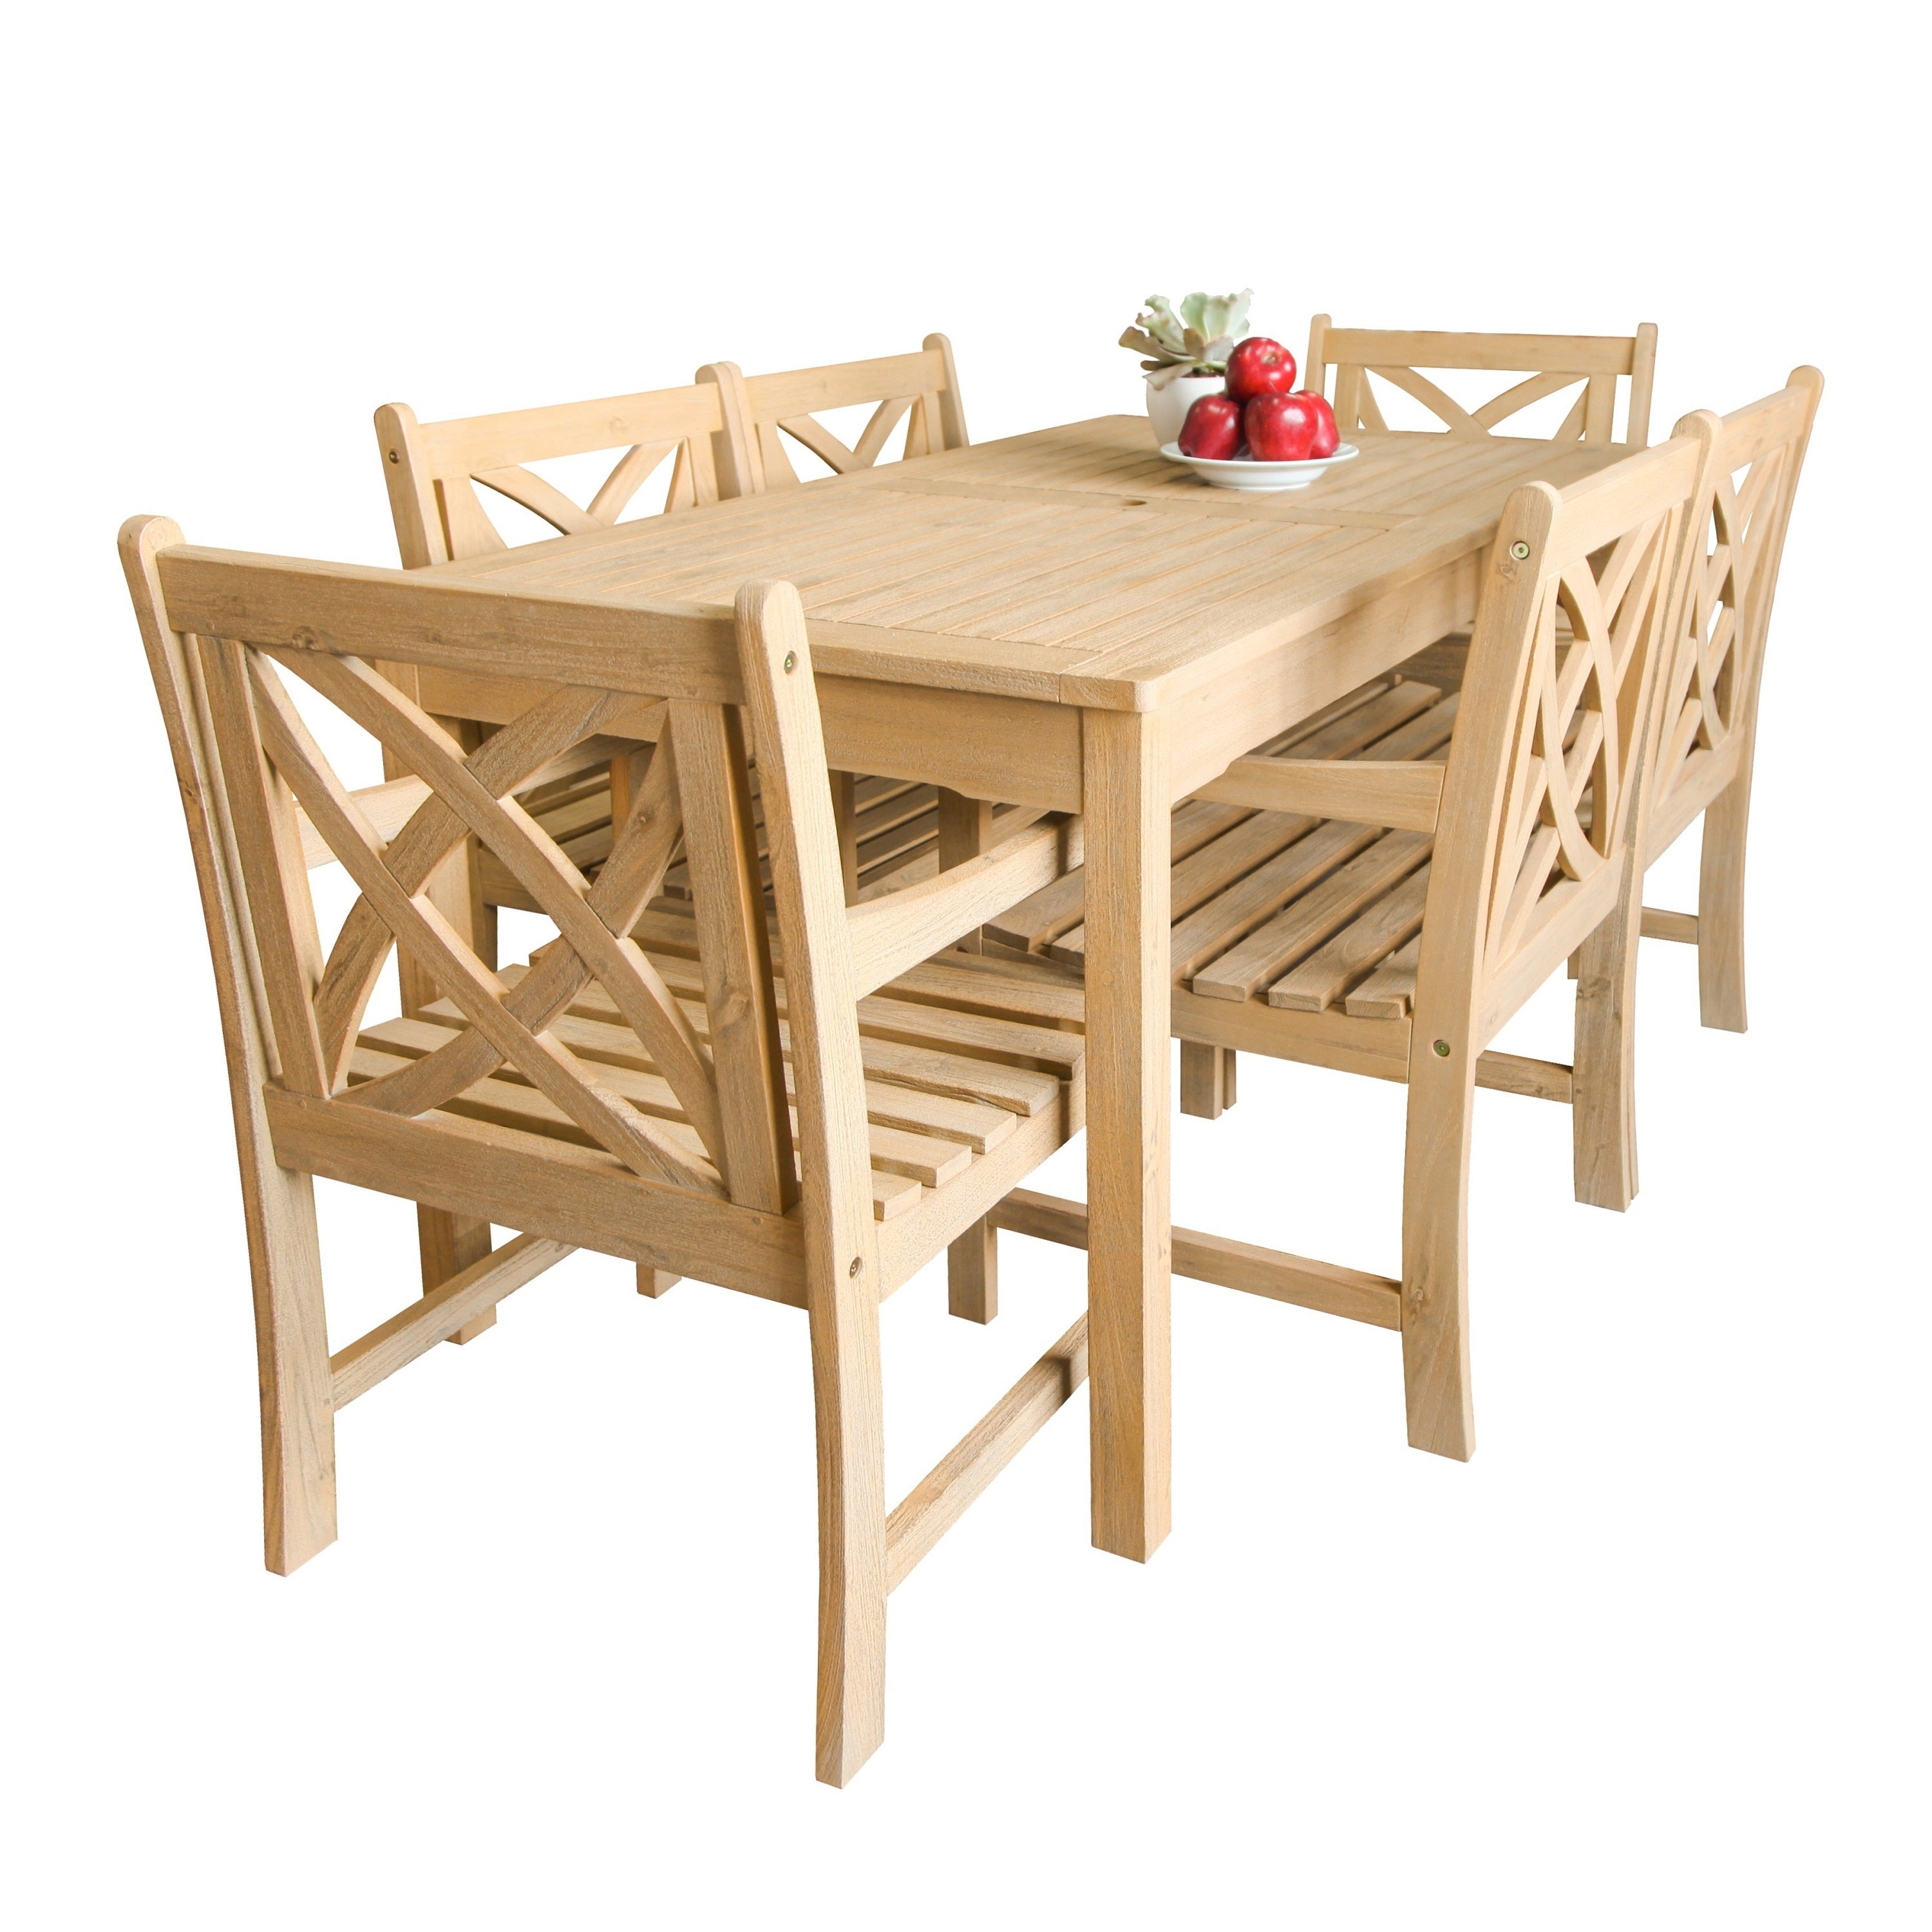 Shop beverly outdoor garden 7 piece dining set with rectangular table and six armchairs in sand splashed finish free shipping on orders over 45